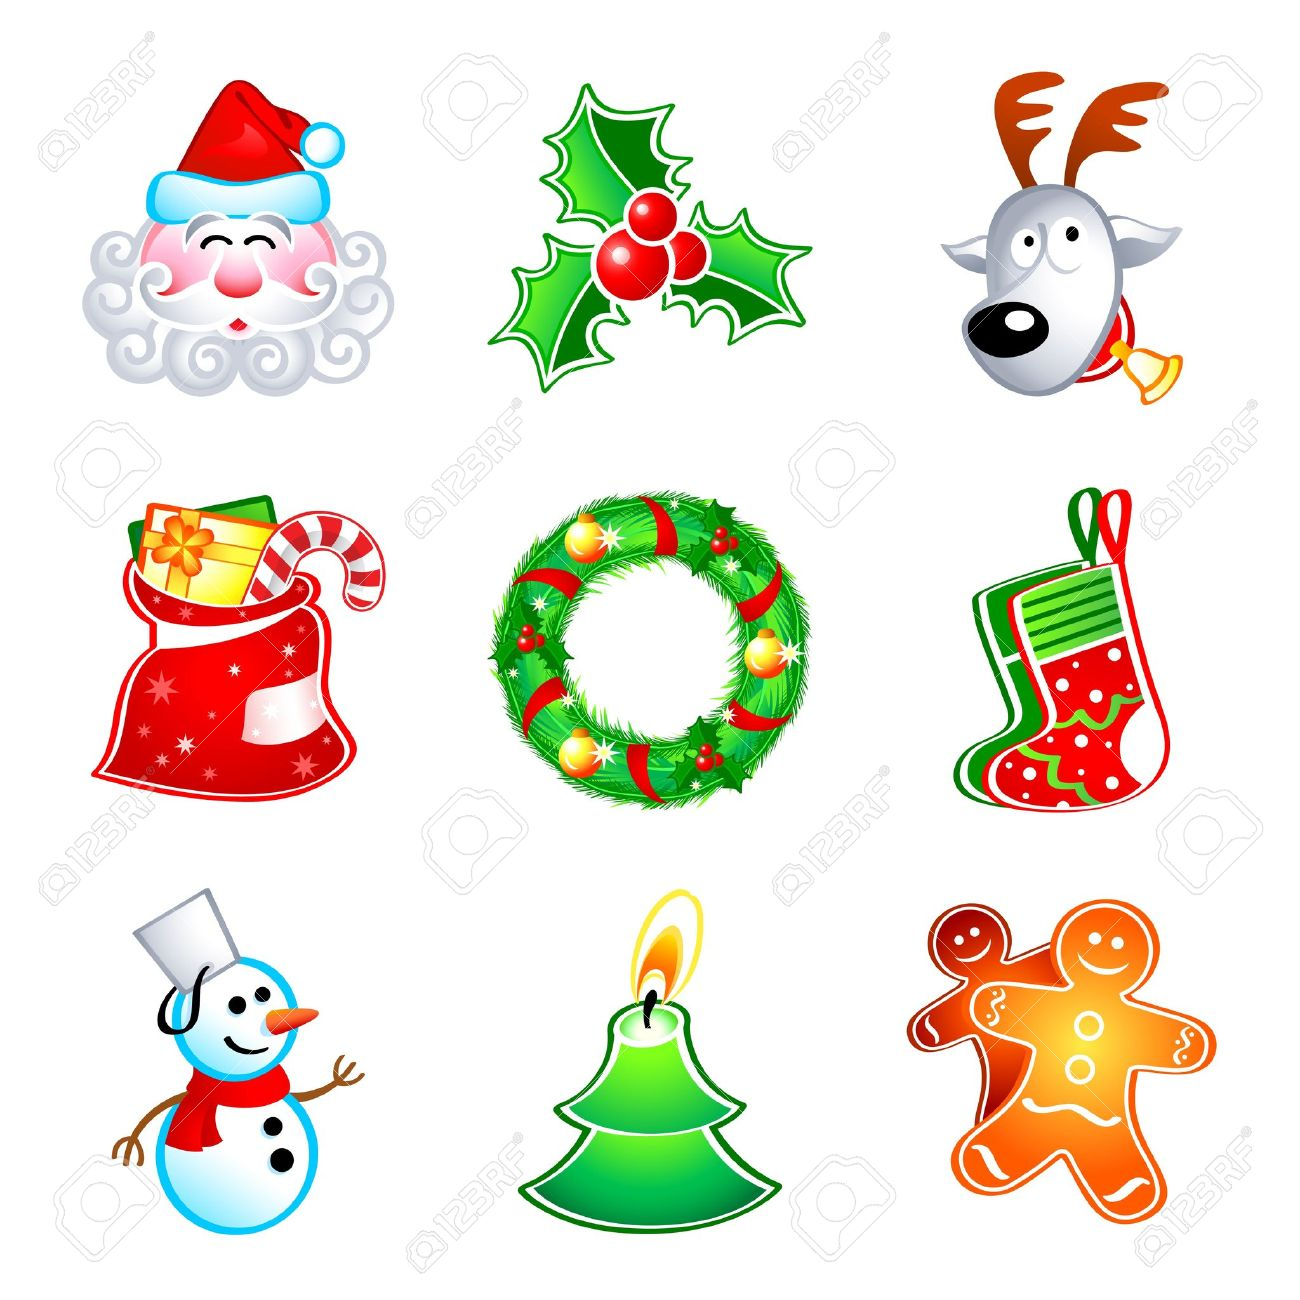 Colorful icons with traditional christmas symbols royalty free colorful icons with traditional christmas symbols stock vector 10011276 biocorpaavc